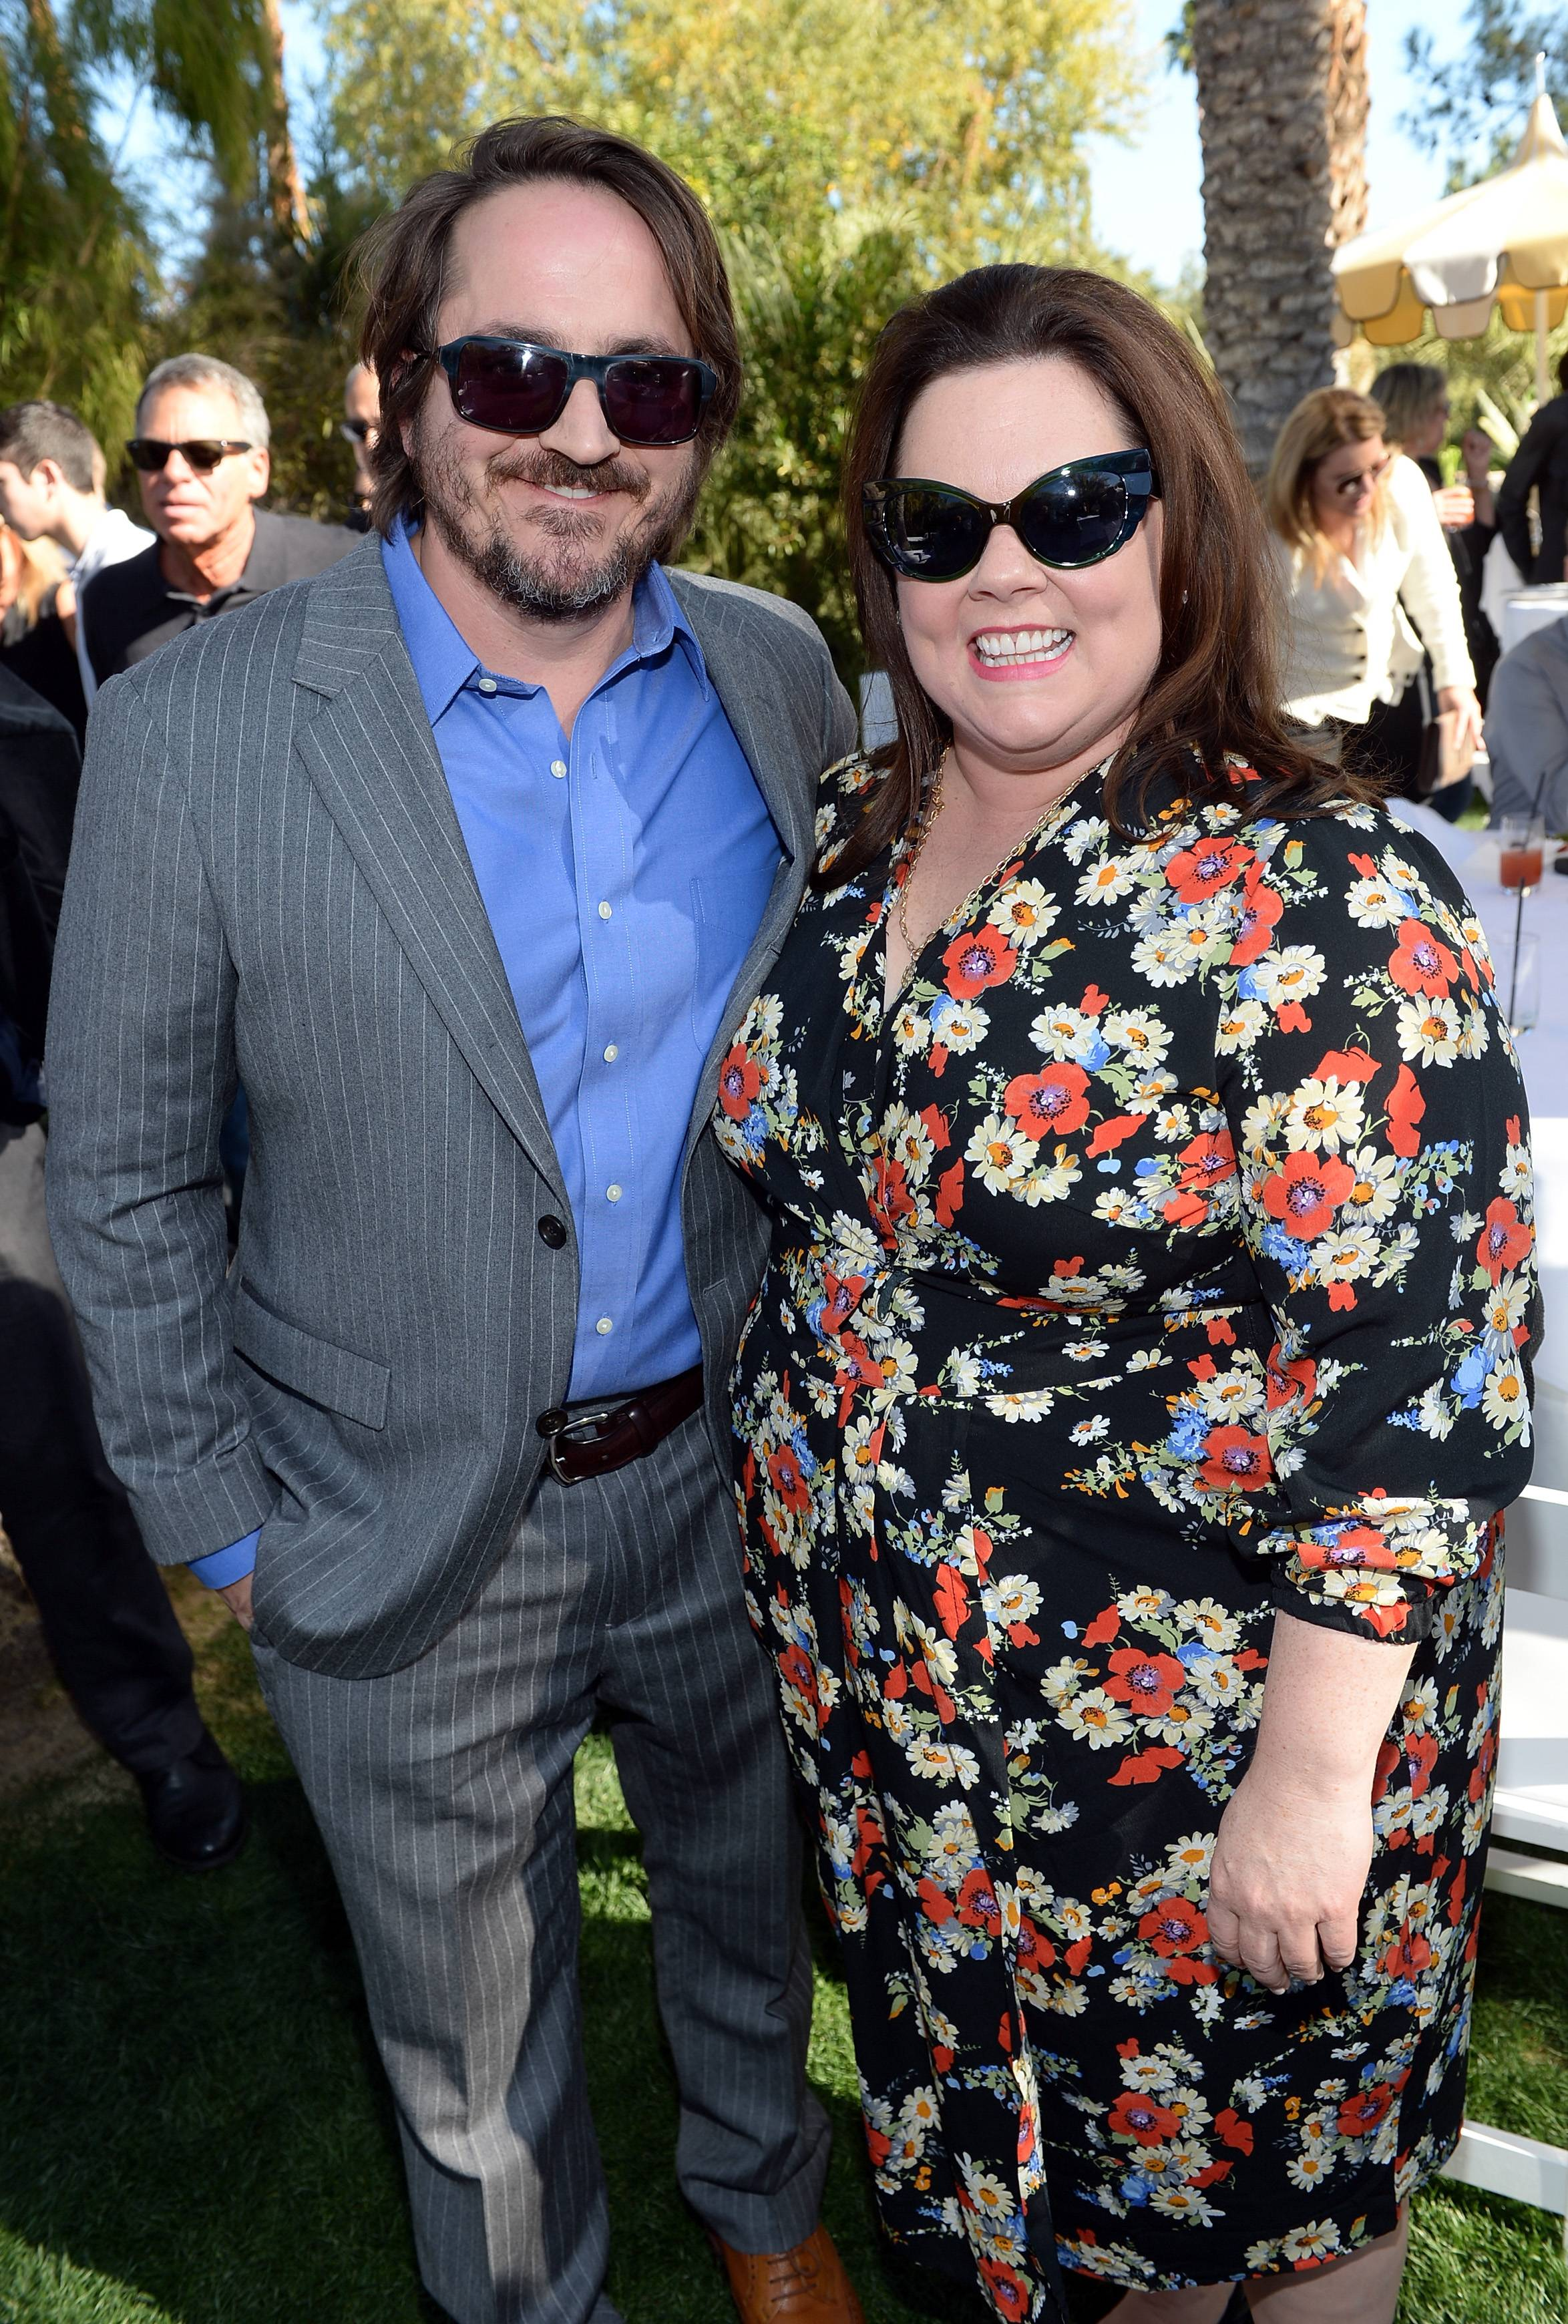 Variety's Creative Impact Awards And 10 Directors to Watch Brunch Presented By Mercedes-Benz At The 25th Annual Palm Springs International Film Festival